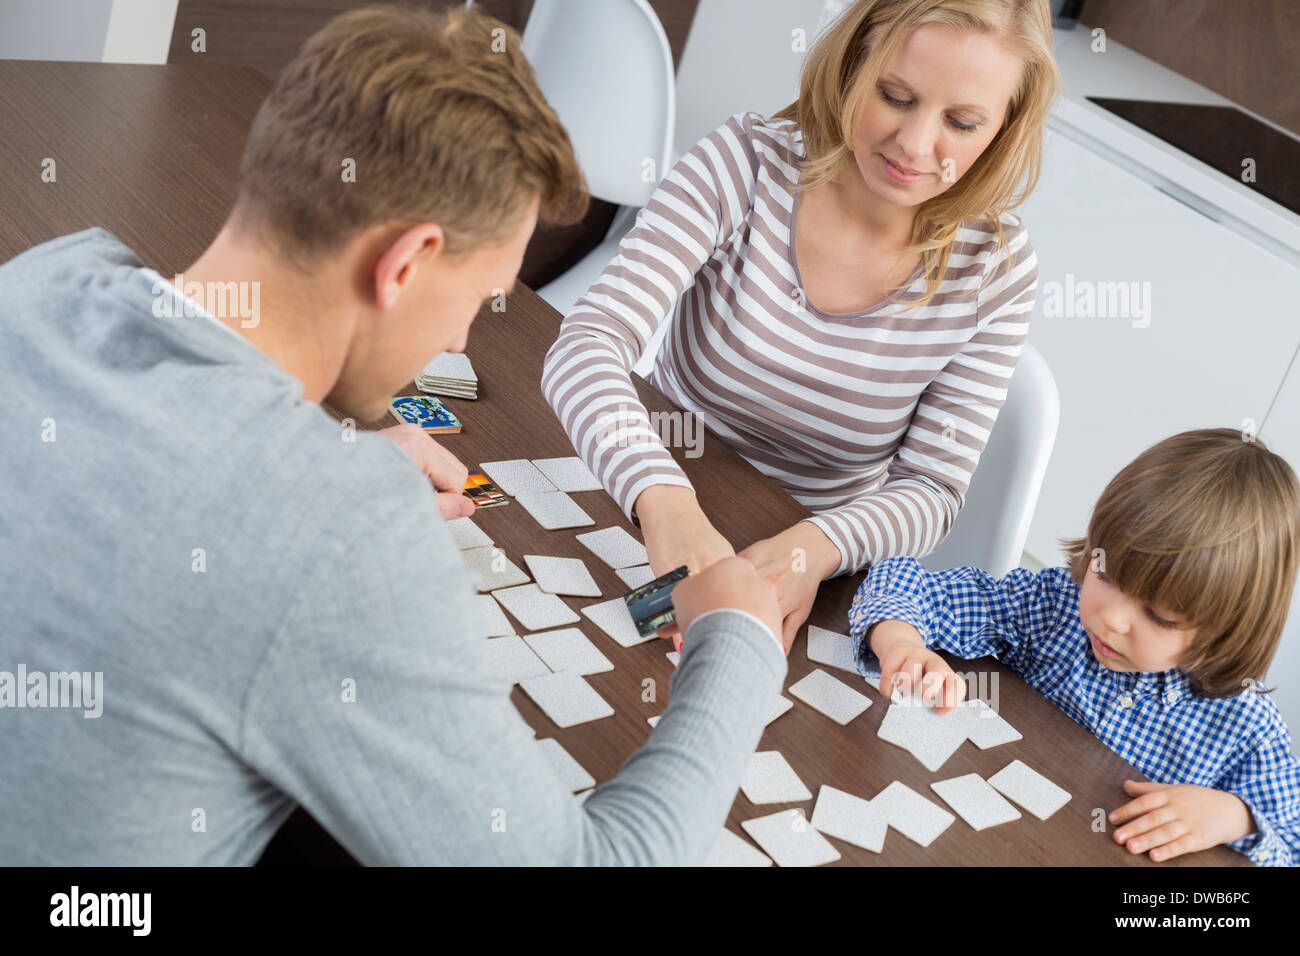 Family of three playing cards at home - Stock Image